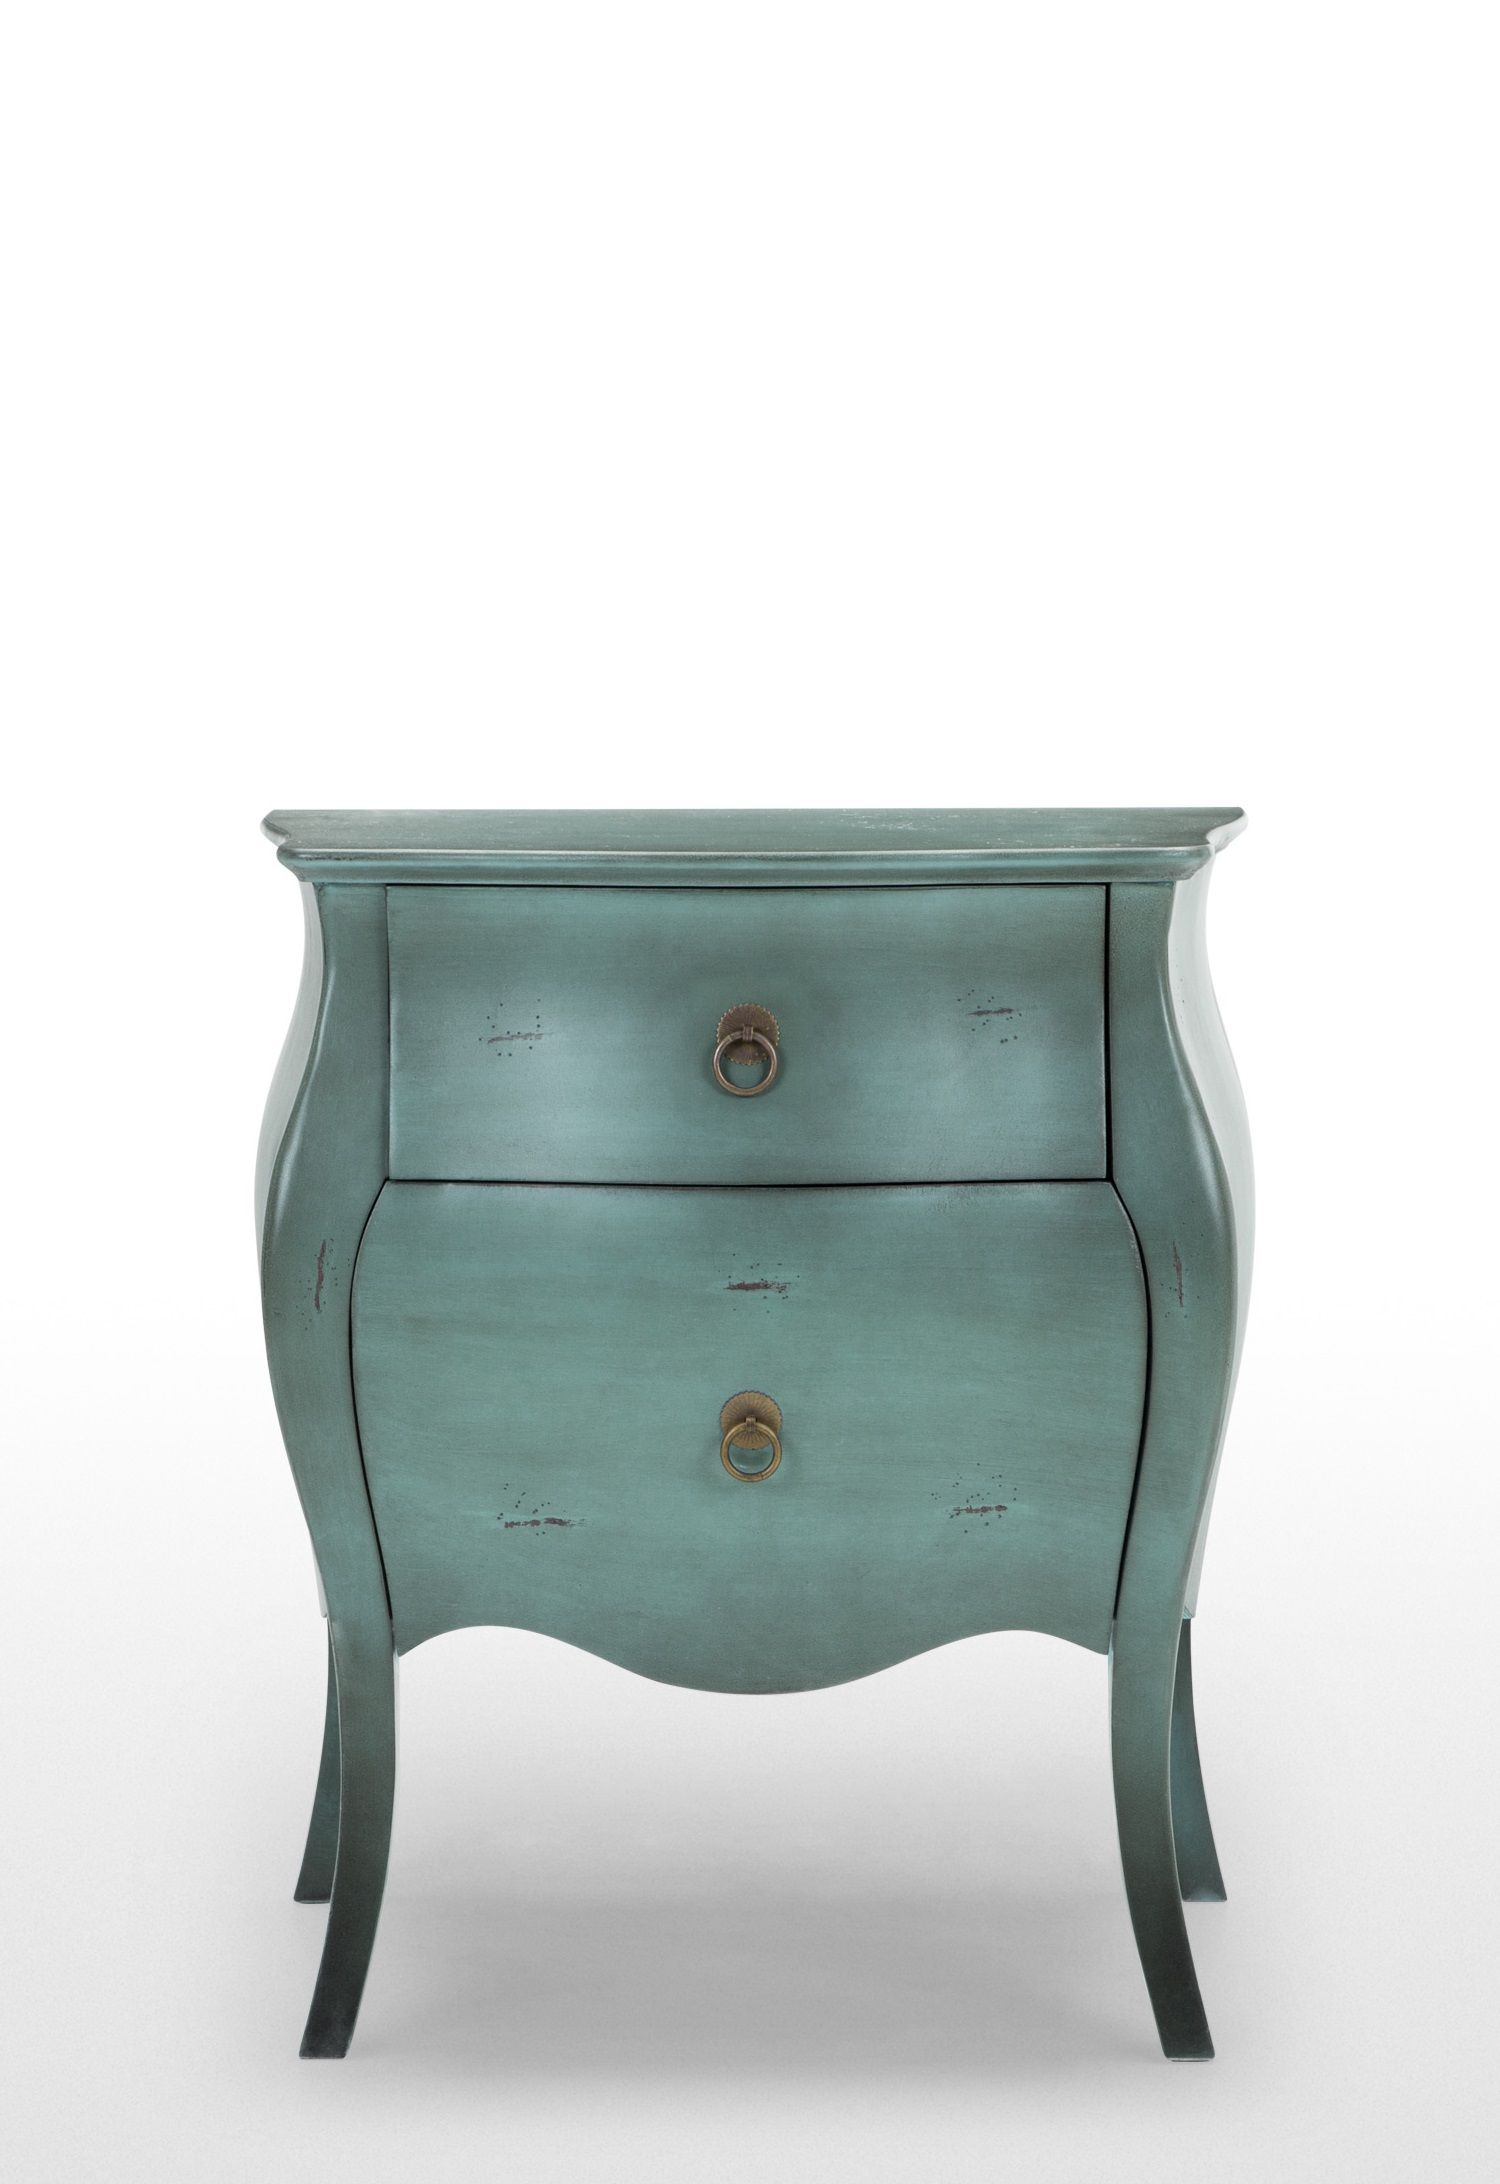 The Bourbon Bedside Table, In Azure Blue. Sophisticated Storage Inspired By  18th Century French Design. £179. MADE.COM